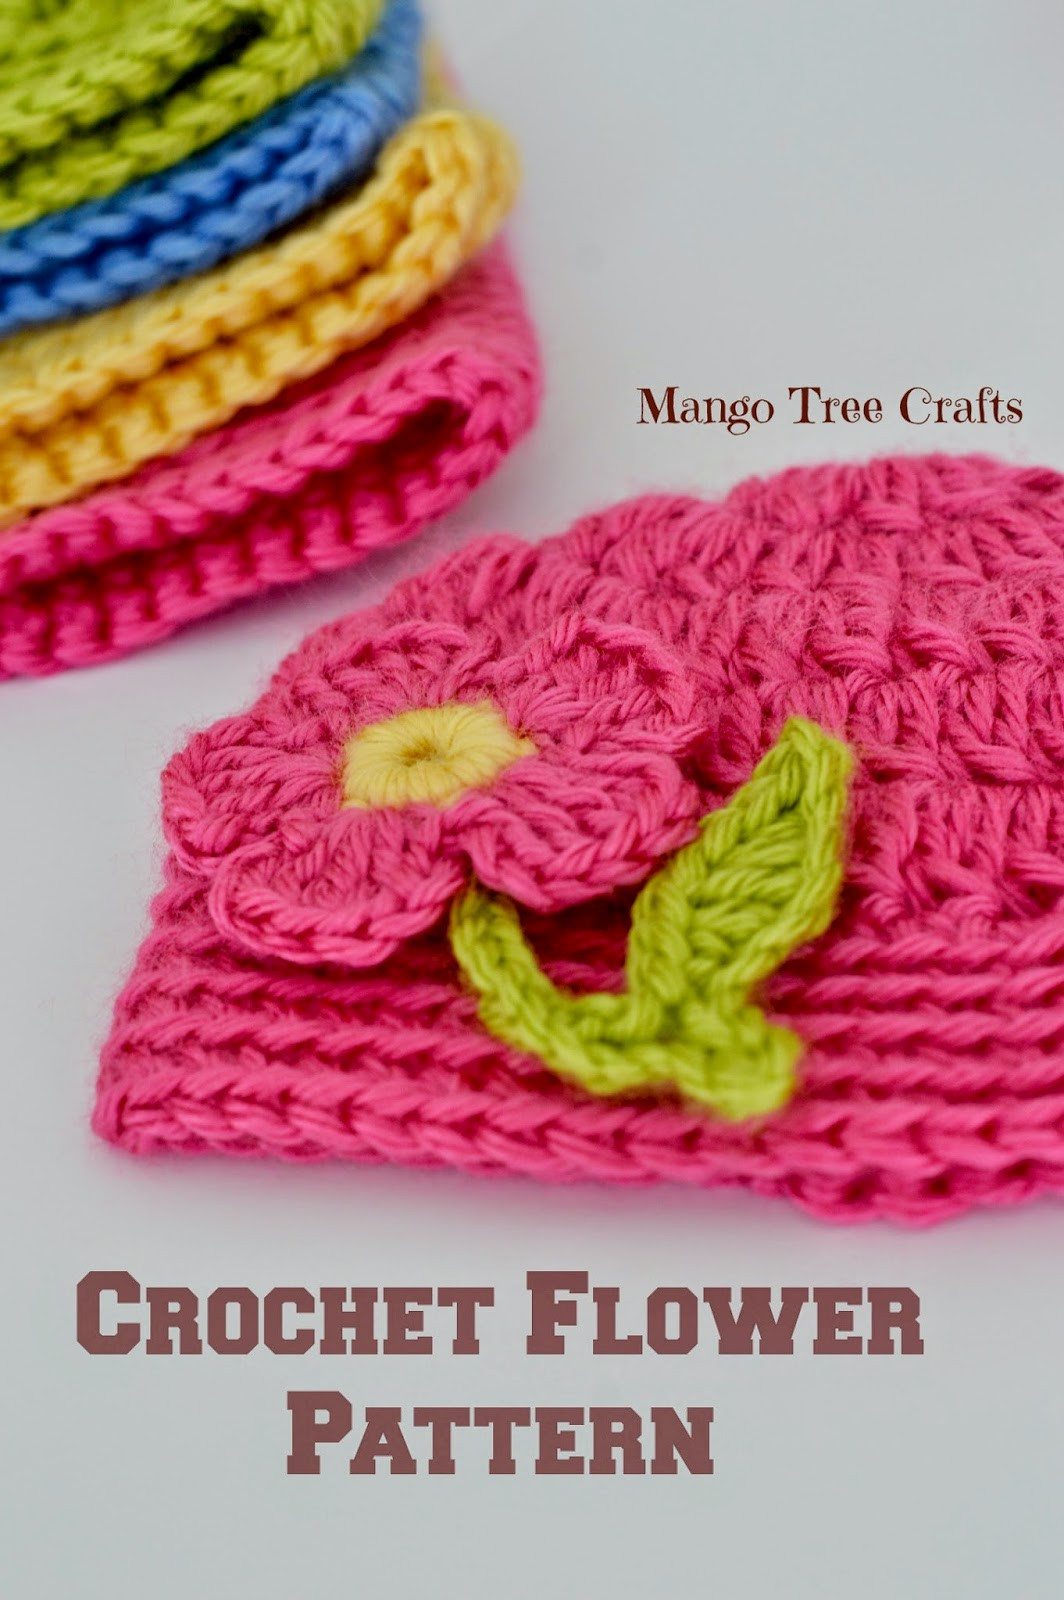 Free Crochet Flower Patterns Lovely Mango Tree Crafts Free Crochet Flower Applique Pattern Of Amazing 42 Images Free Crochet Flower Patterns